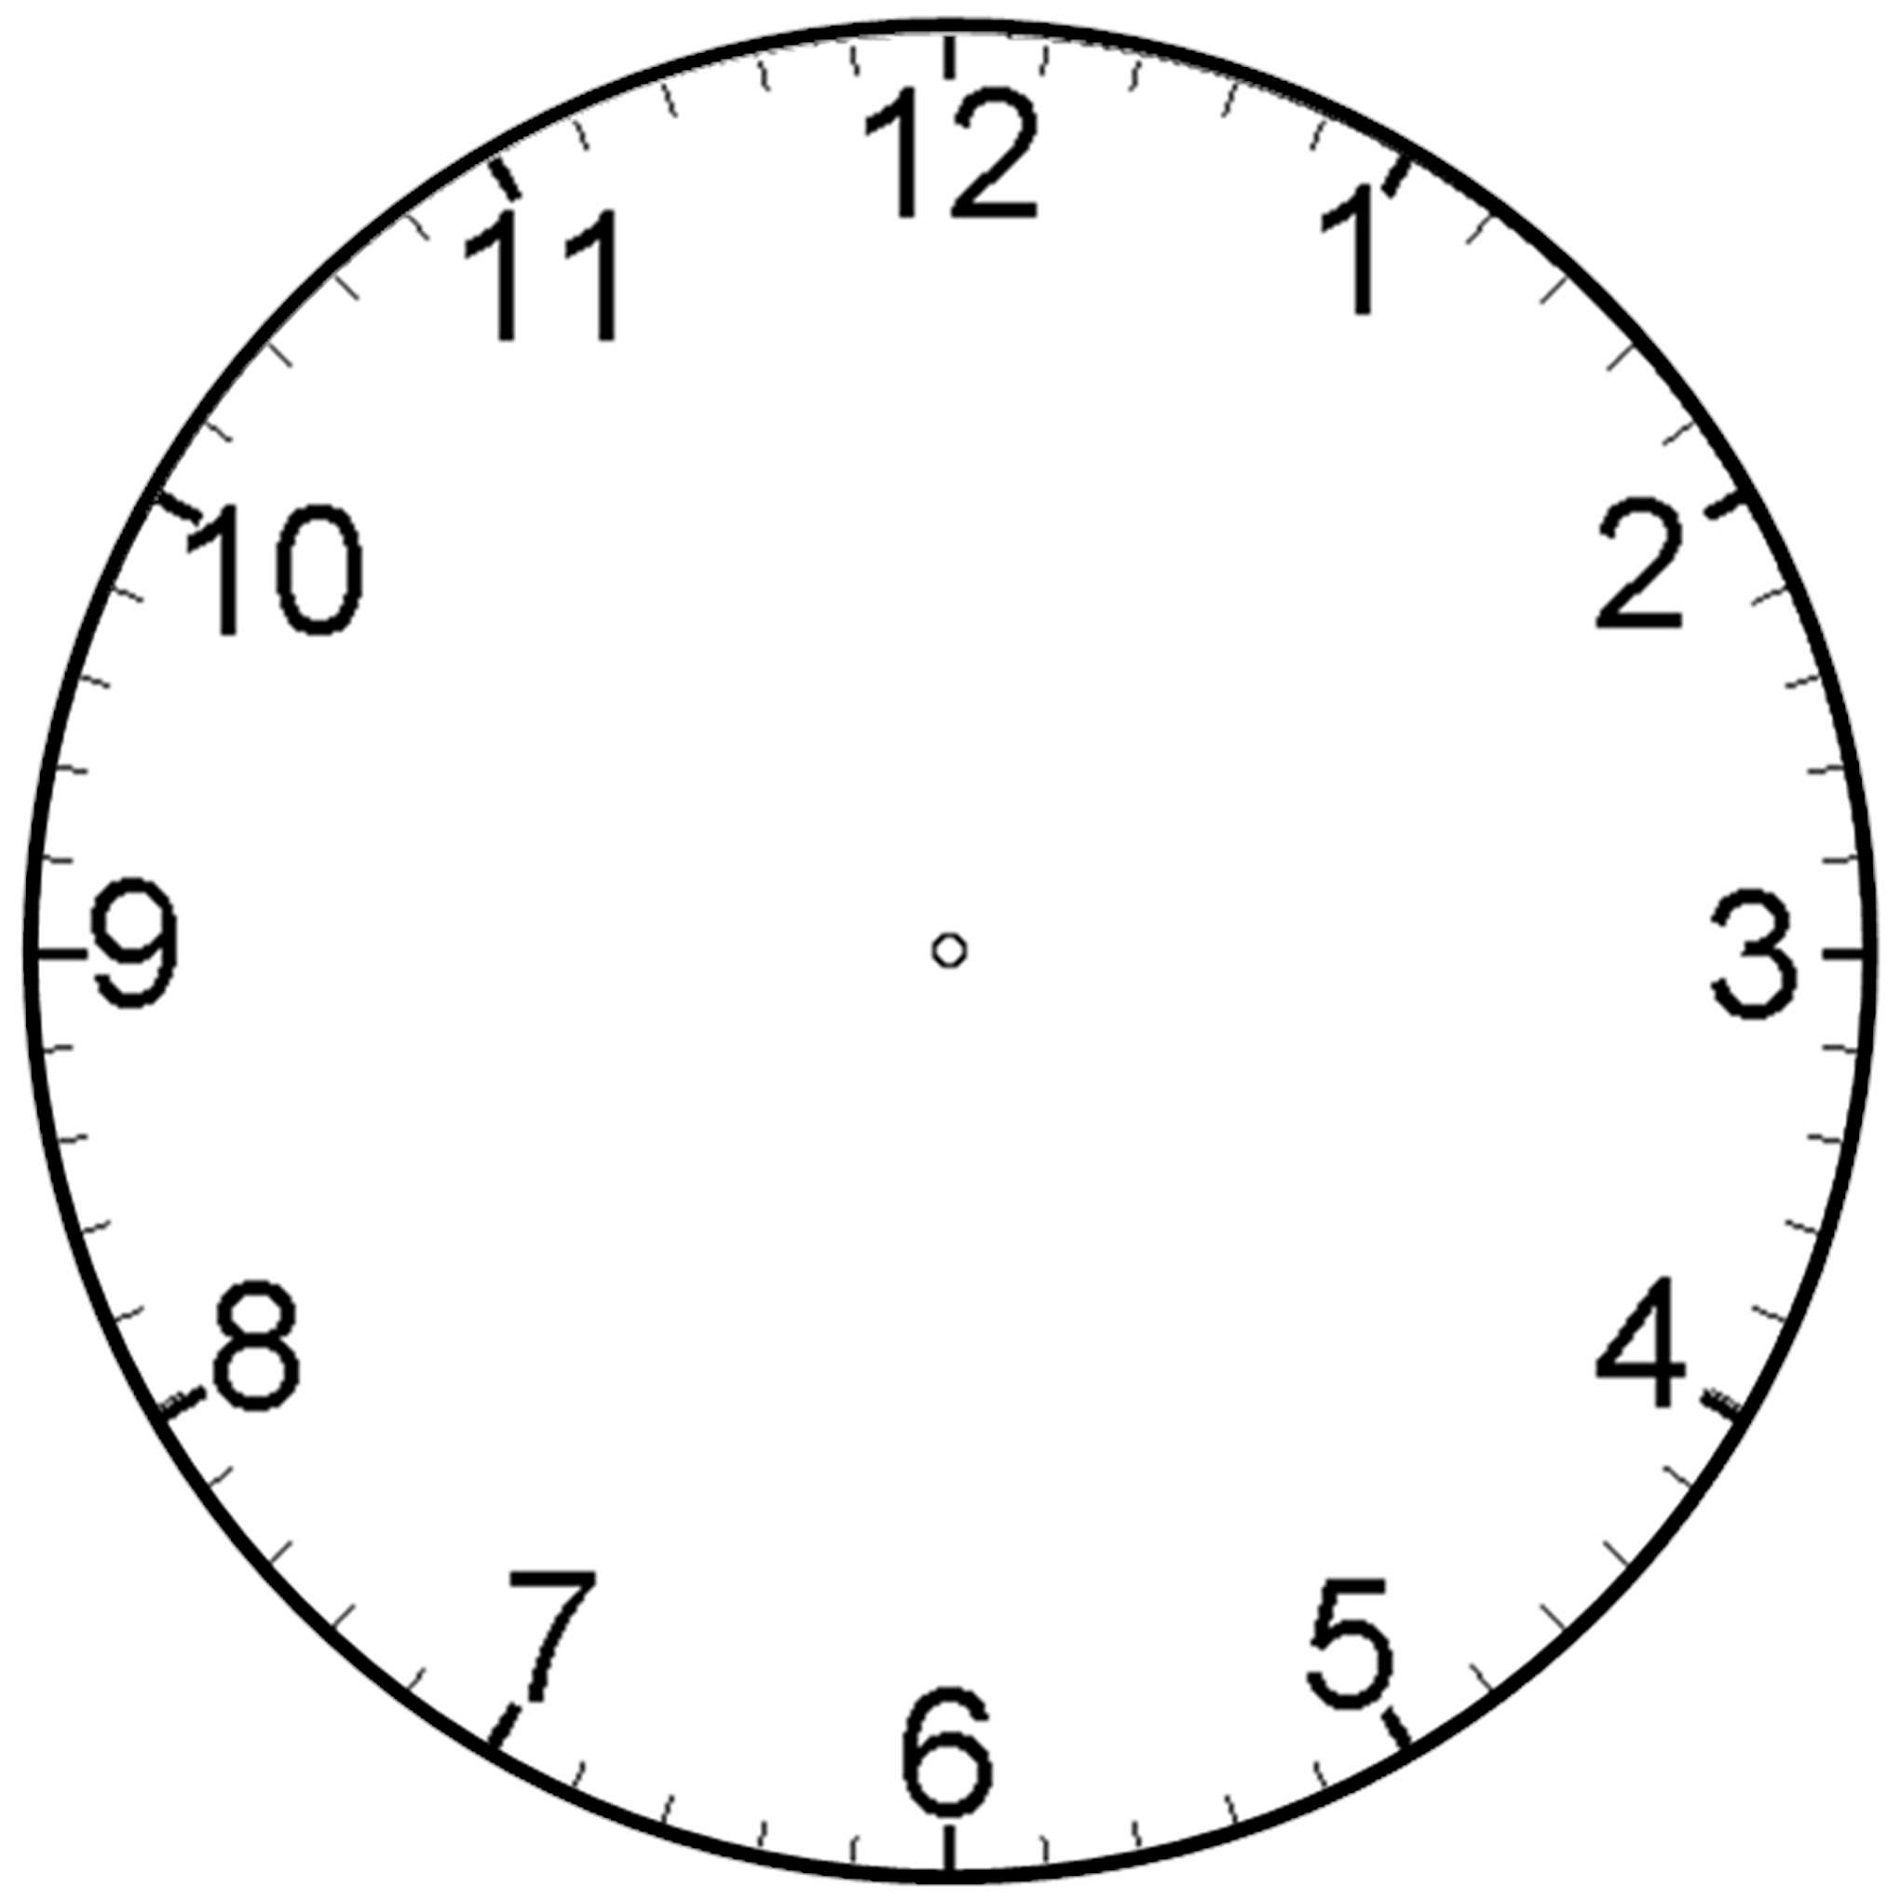 Blank Clock Faces For Exercises Activity Shelter